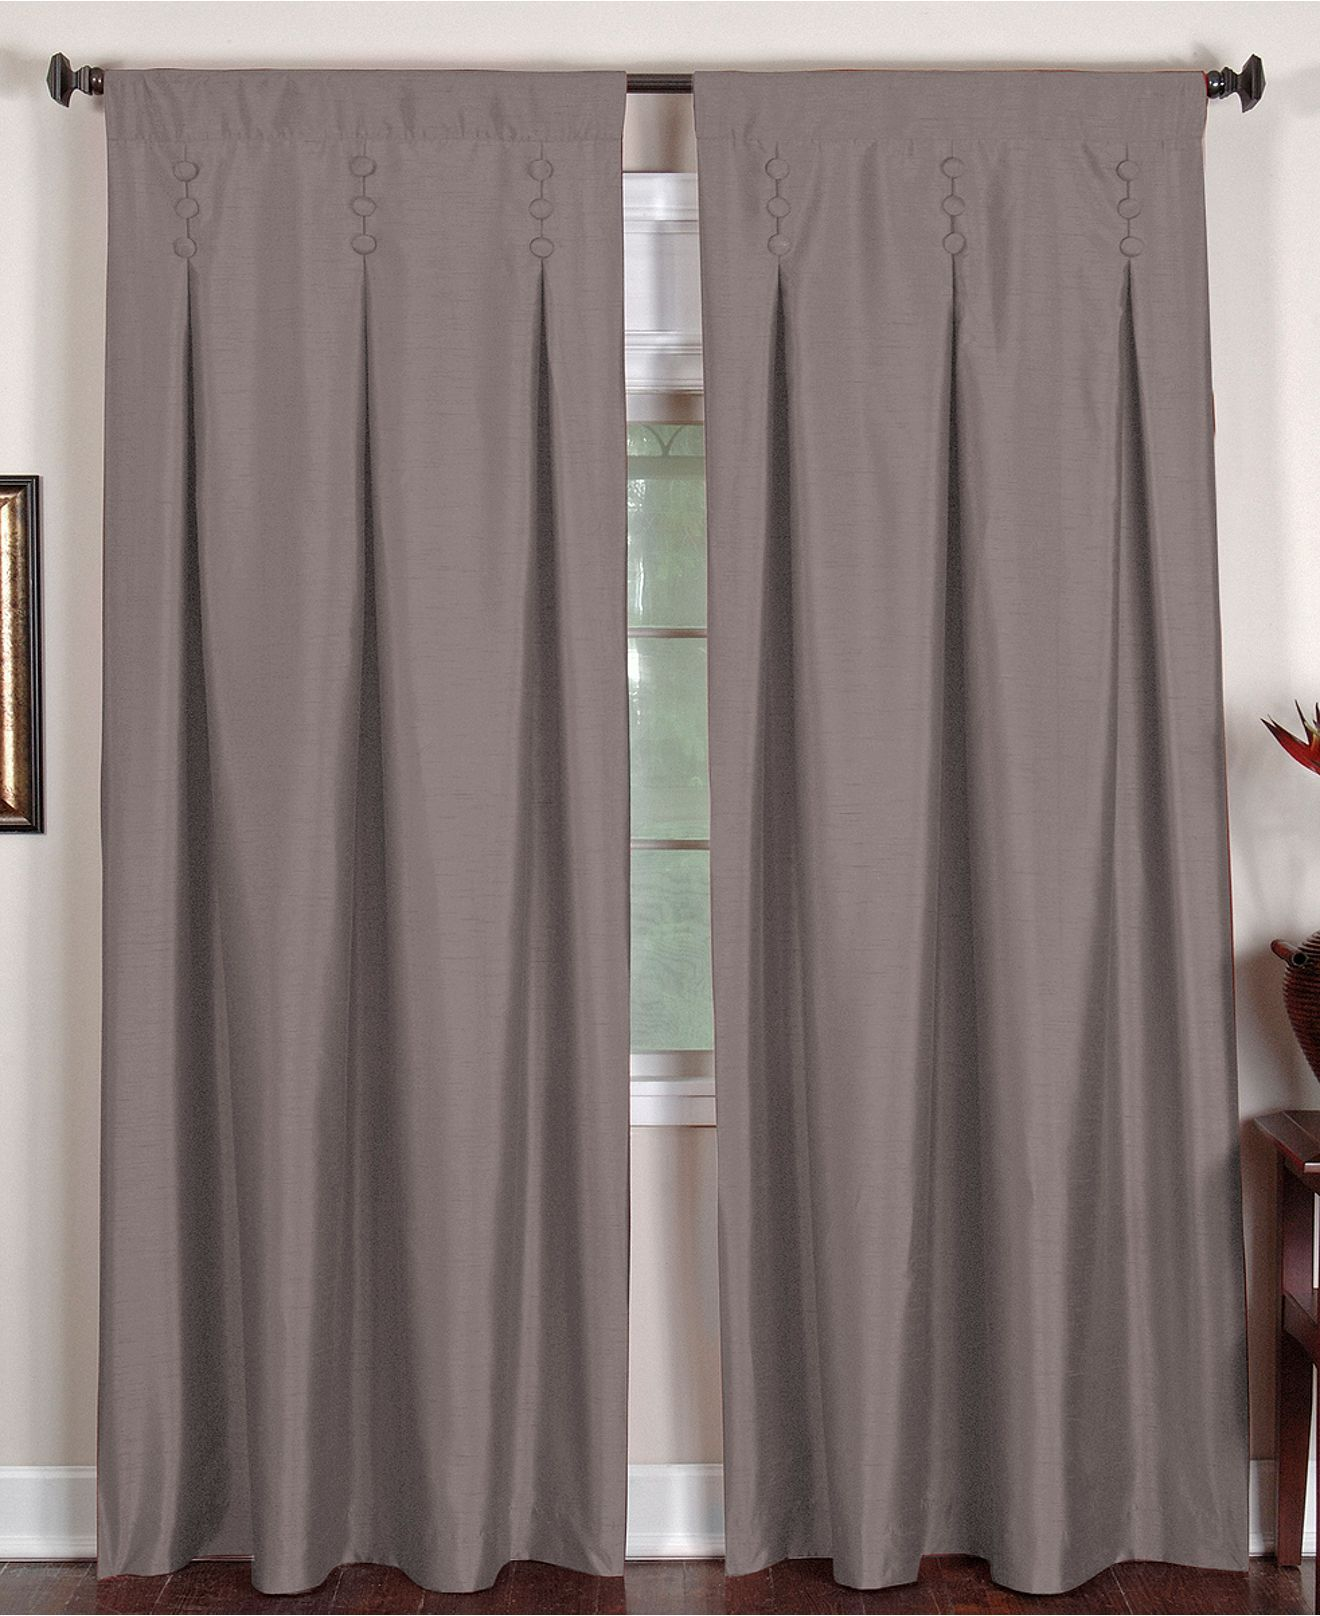 Elrene Window Treatments Imperial 26 X 84 Panel Curtains Amp Drapes For The Home Macys